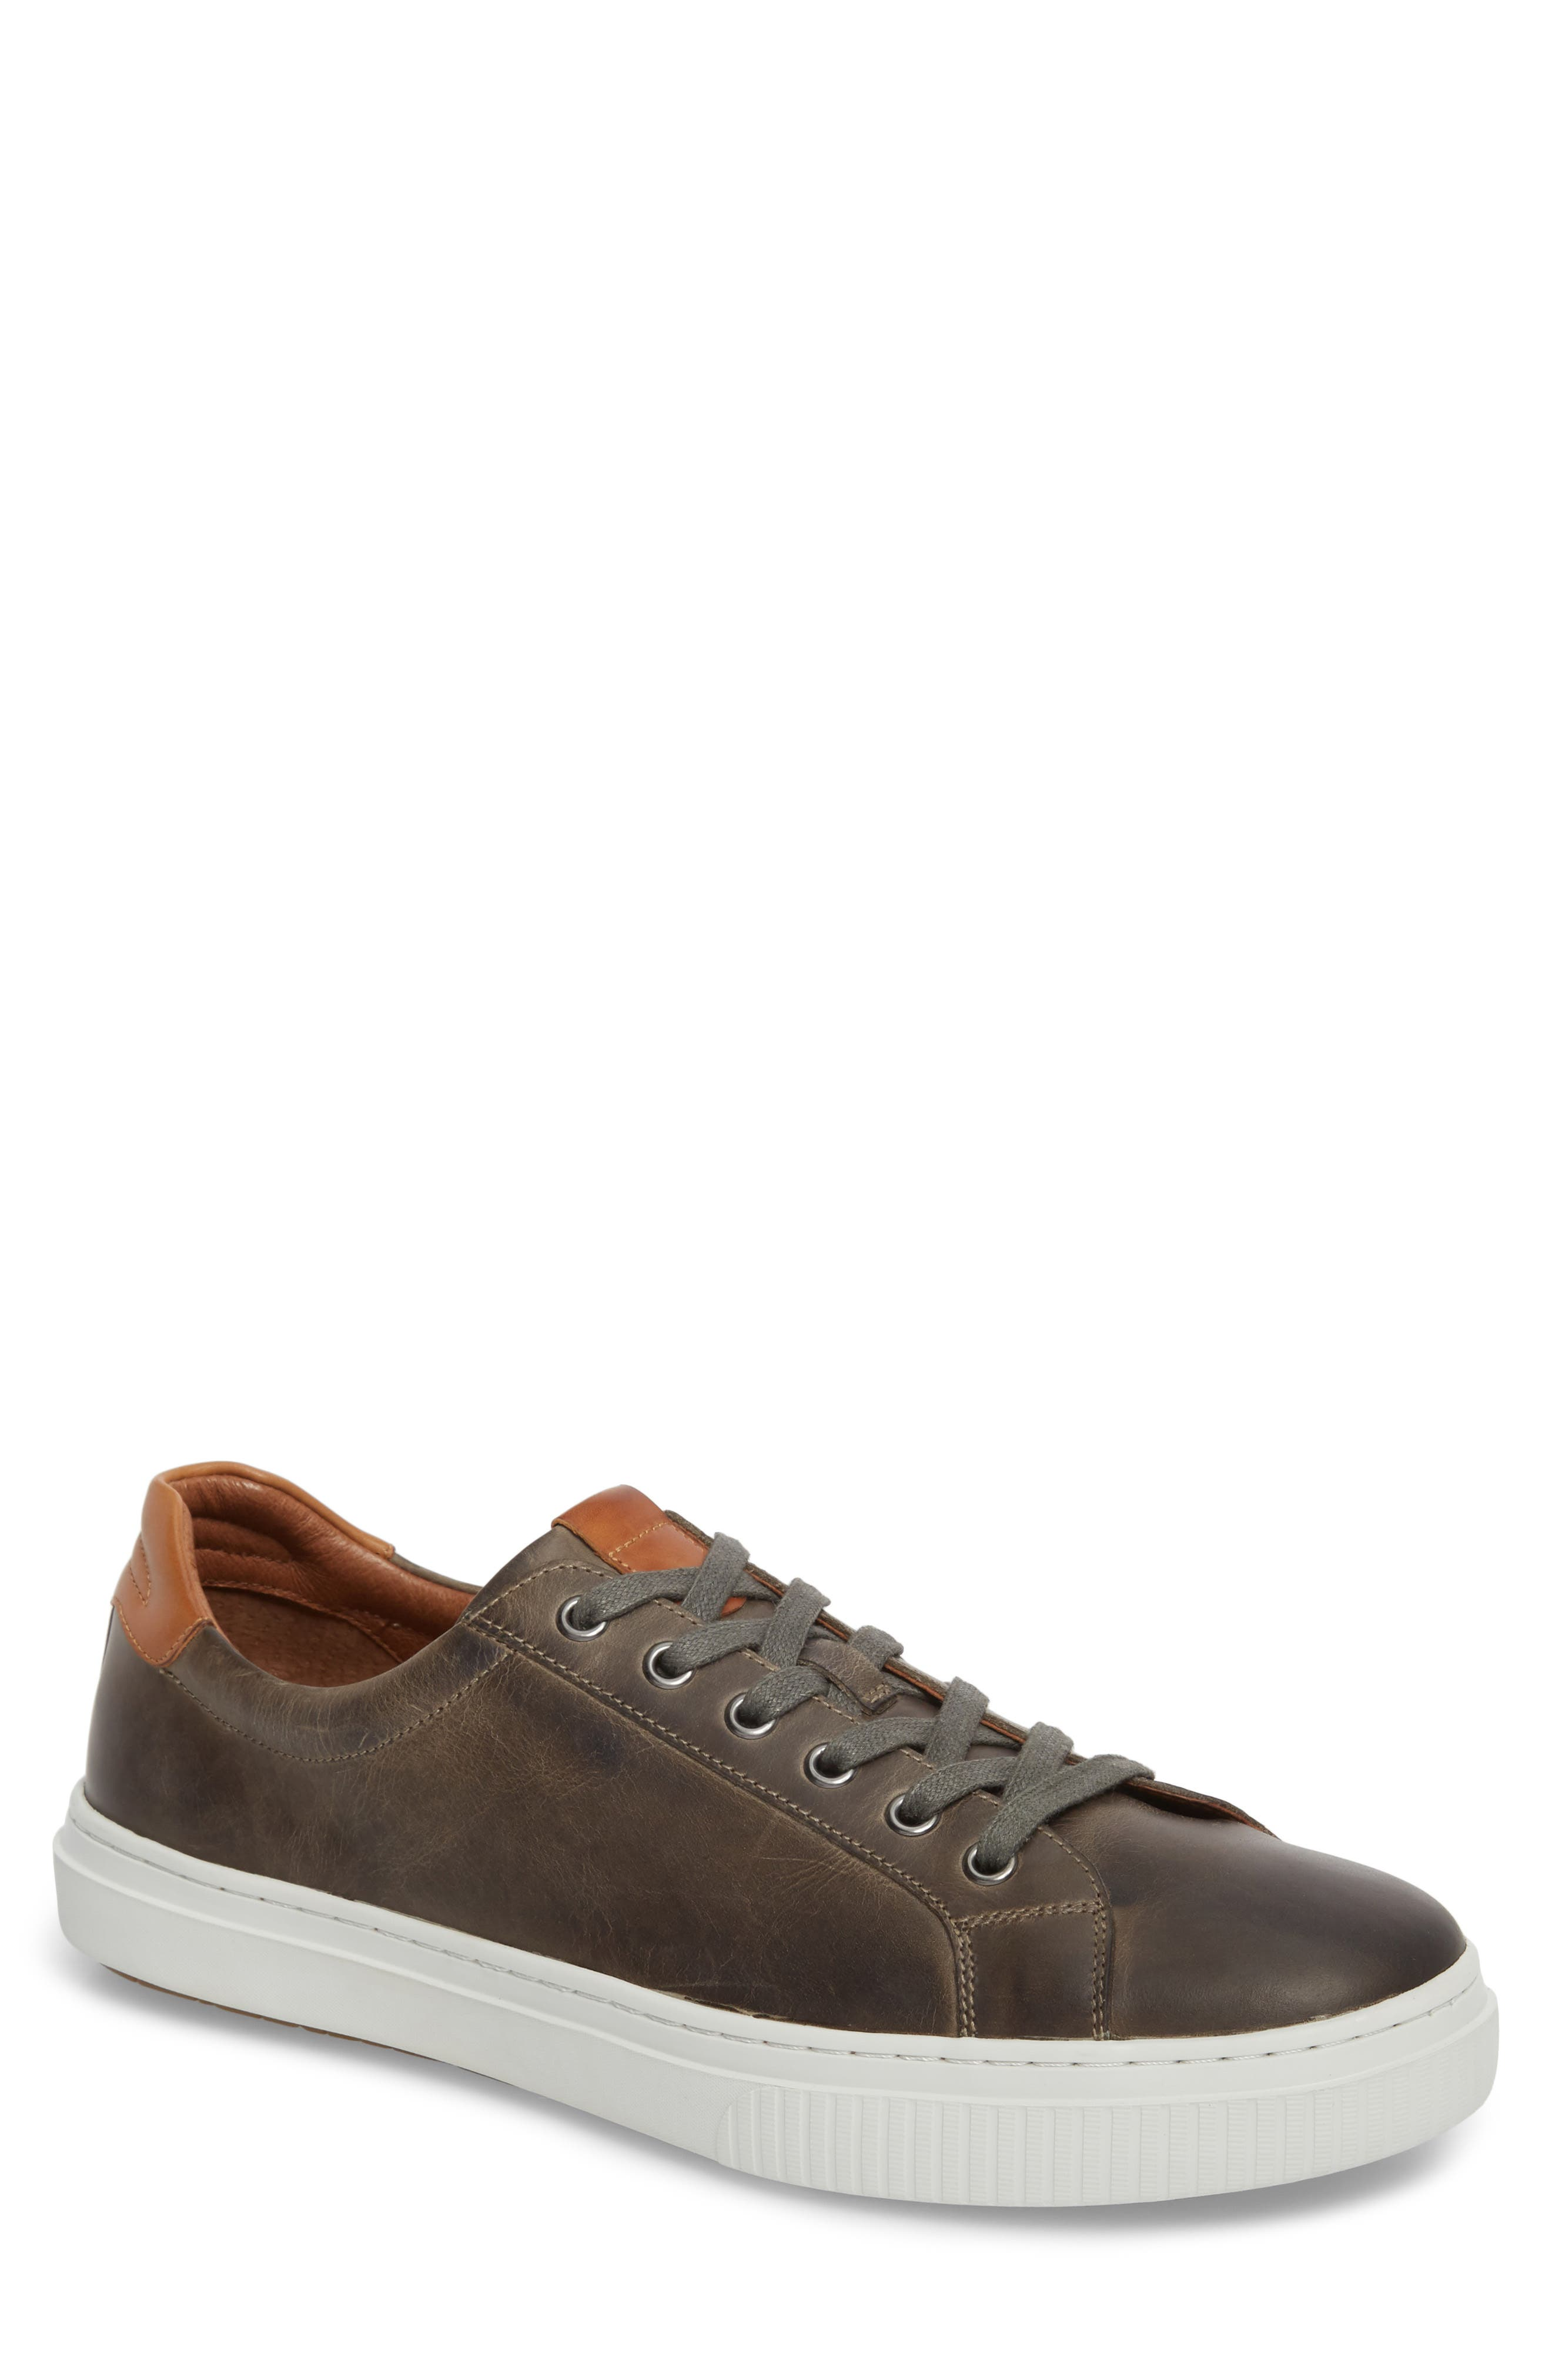 Toliver Low Top Sneaker,                         Main,                         color, GREY LEATHER